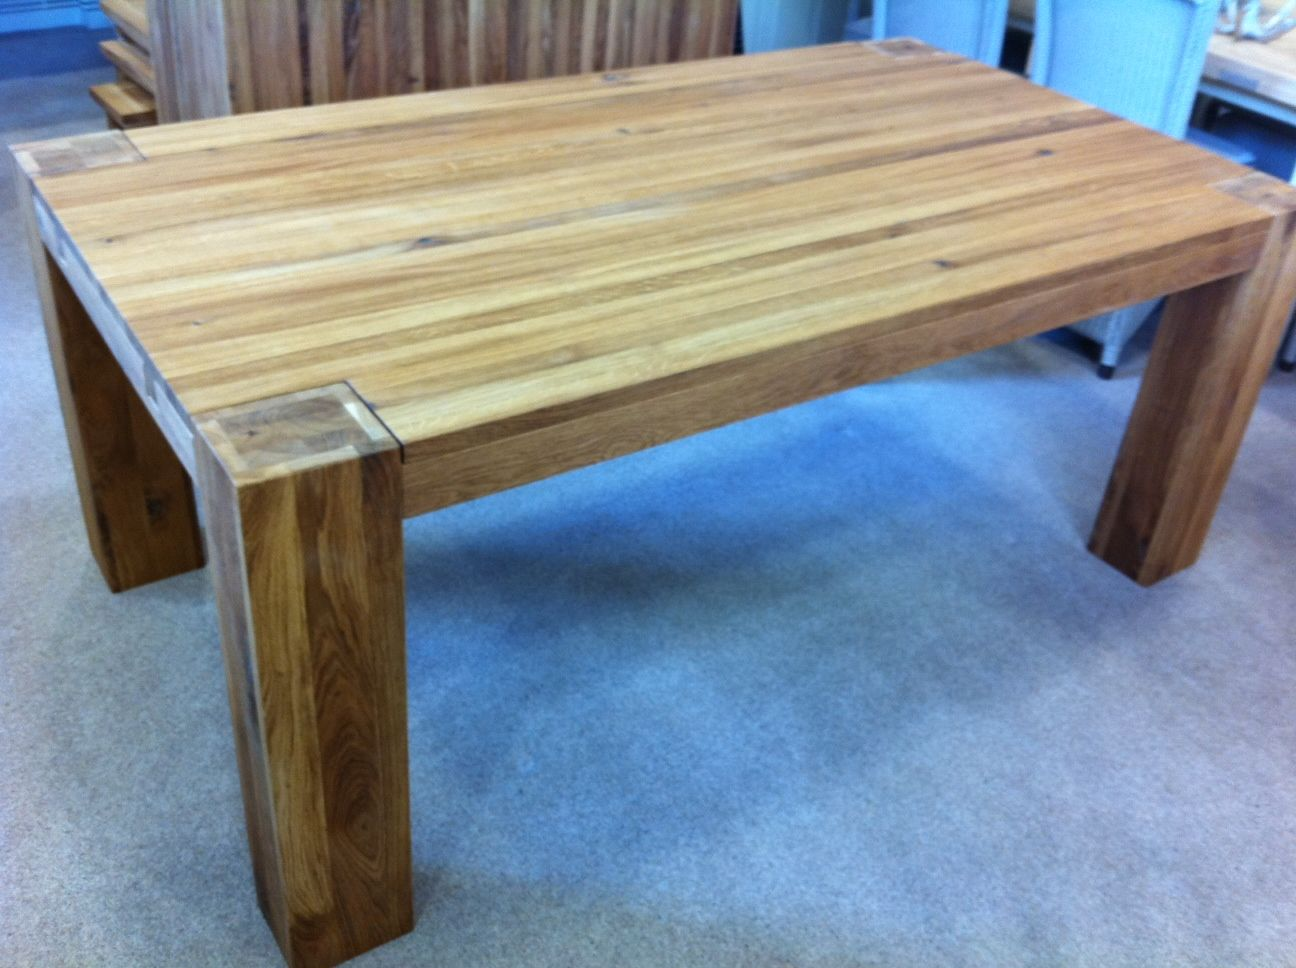 TABLE Clemence Richard Massive Extending Dining Table 5 Sizes